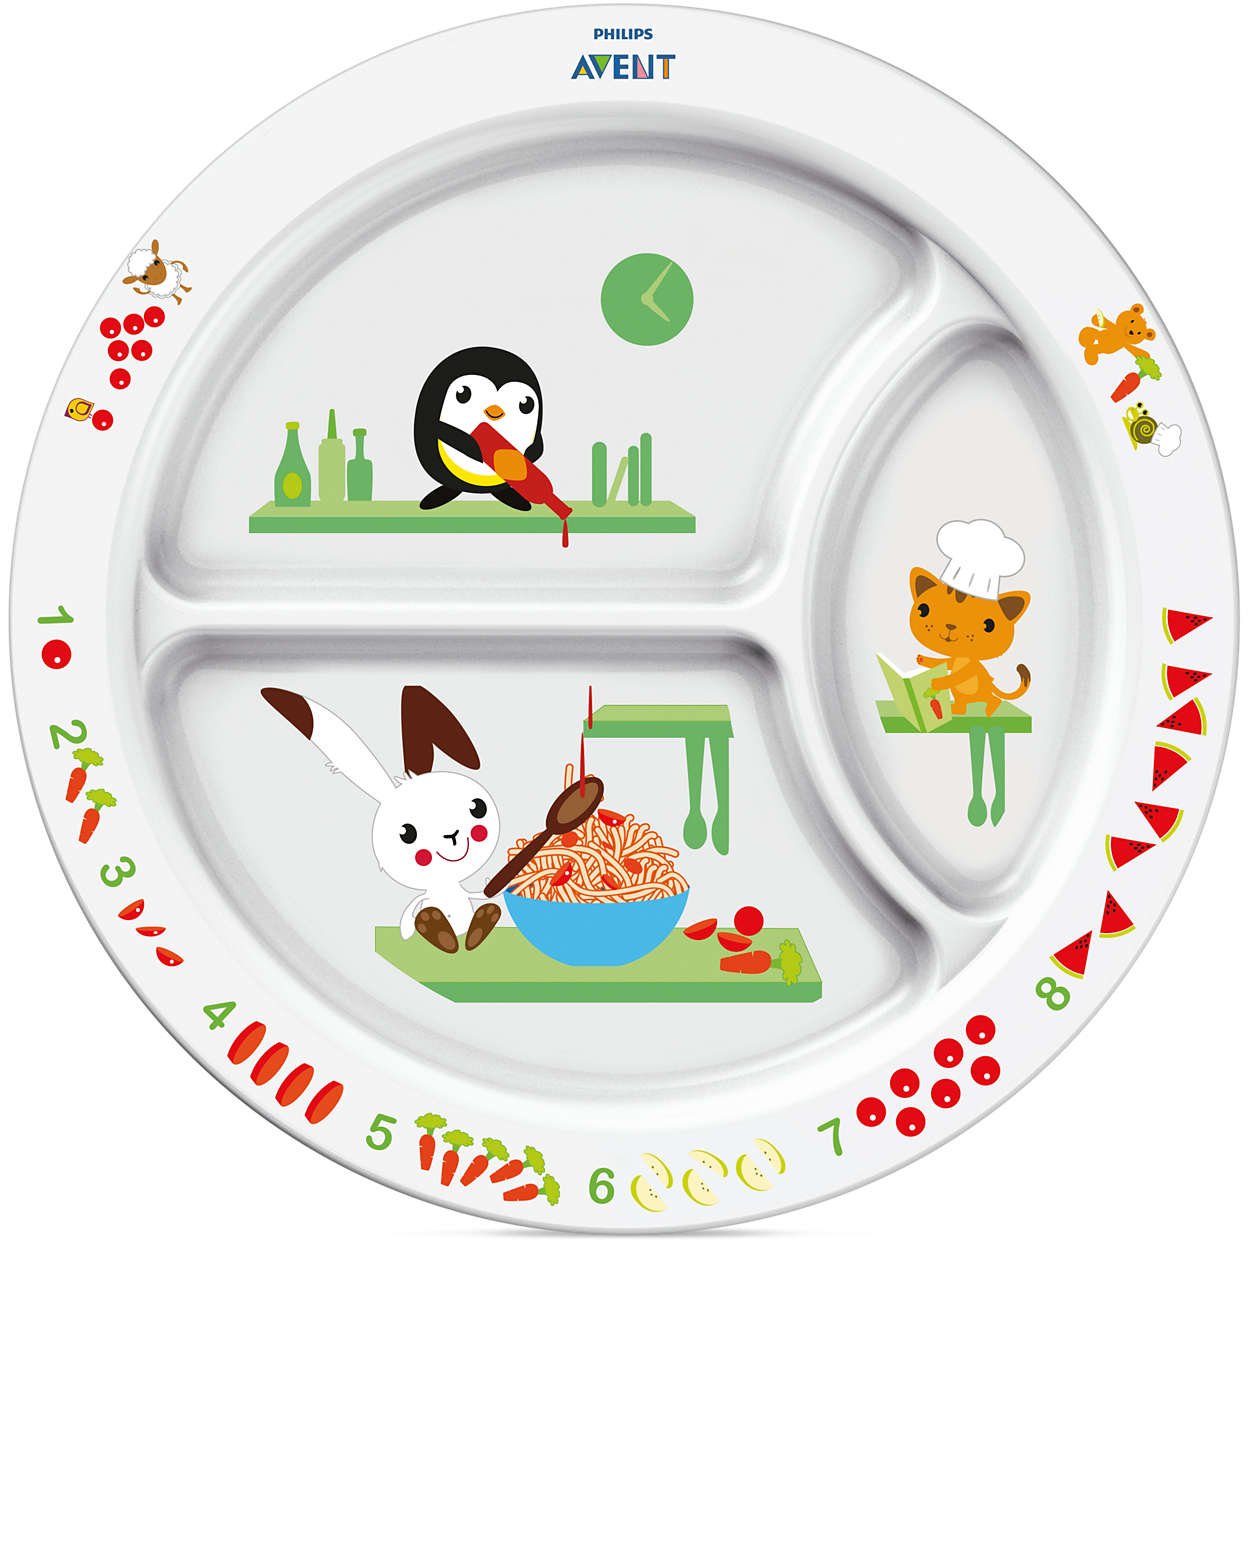 Encourages eating through fun learning